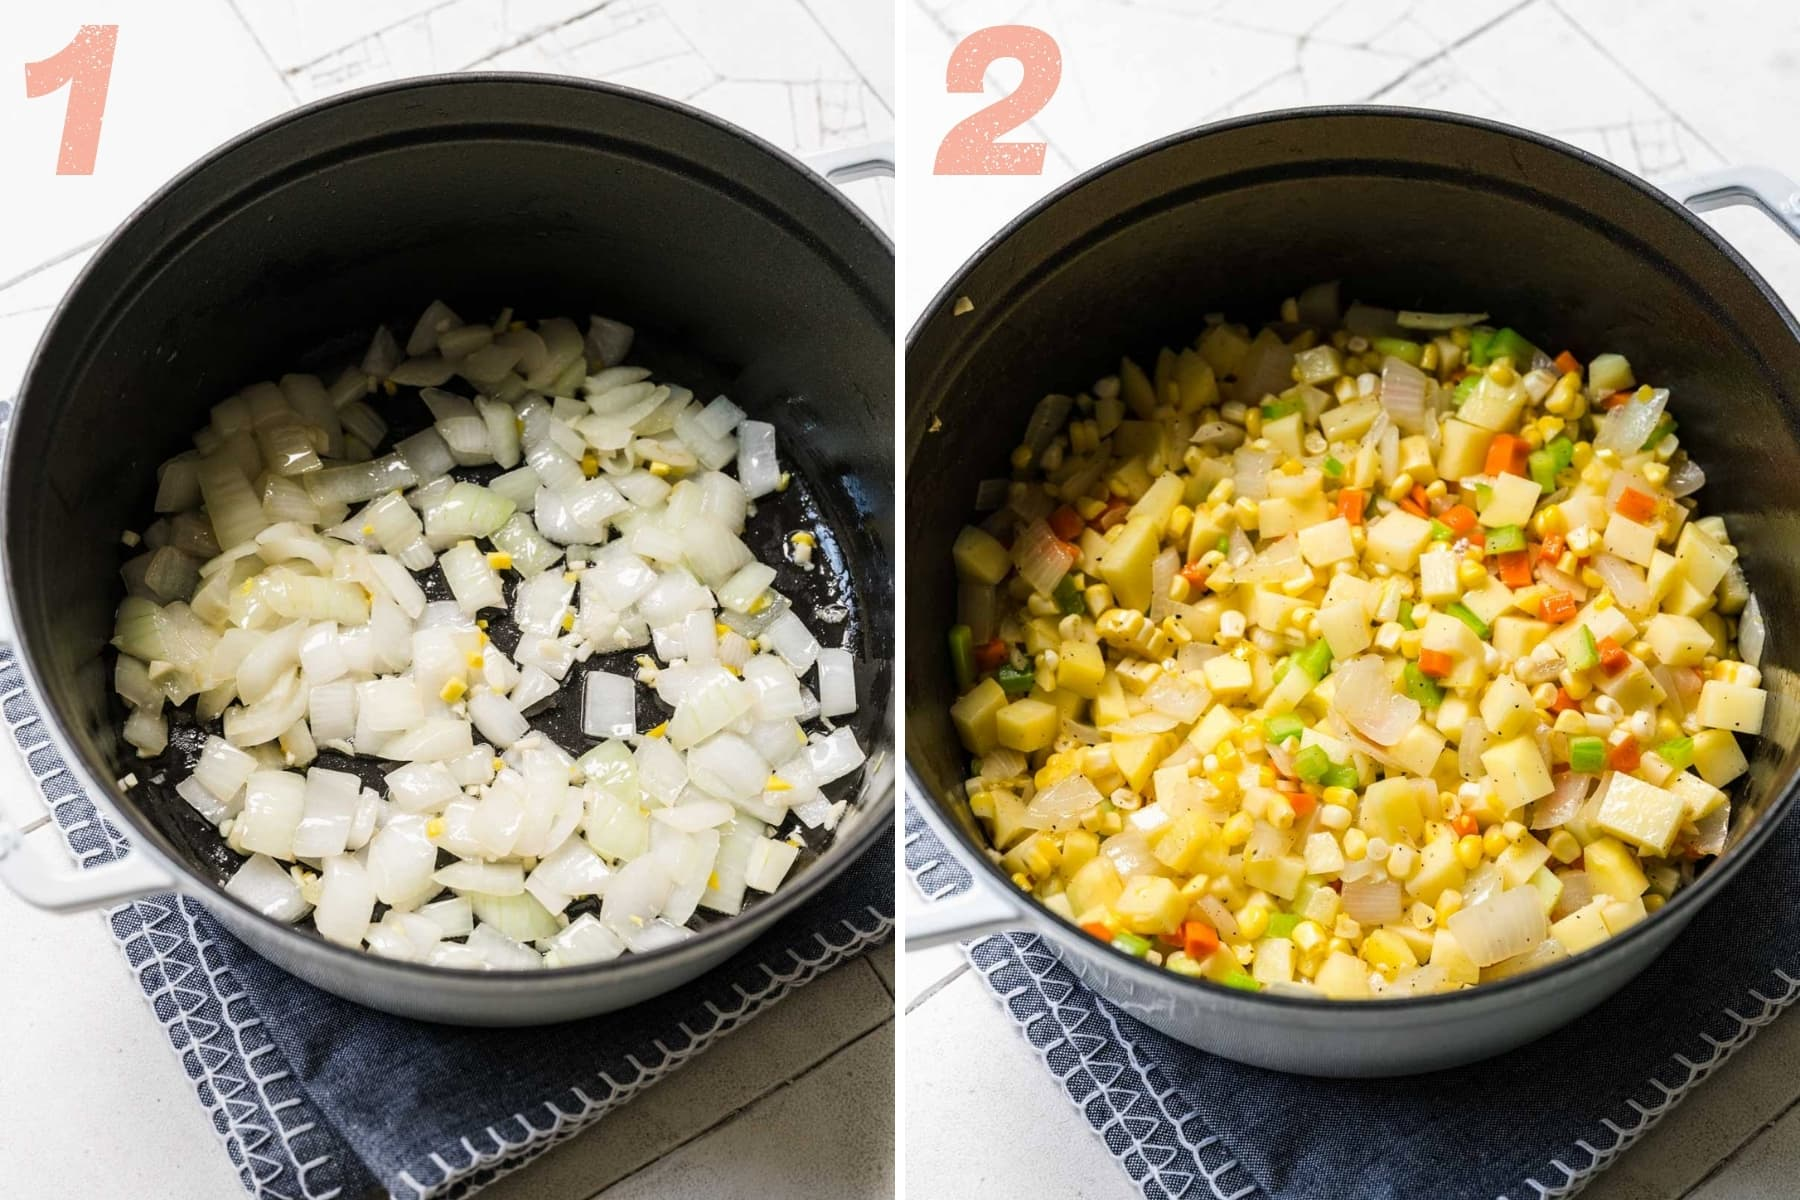 on the left: sauteed onion, garlic and ginger in pot. on the right: sauteed corn, potatoes, carrots and celery in pot.